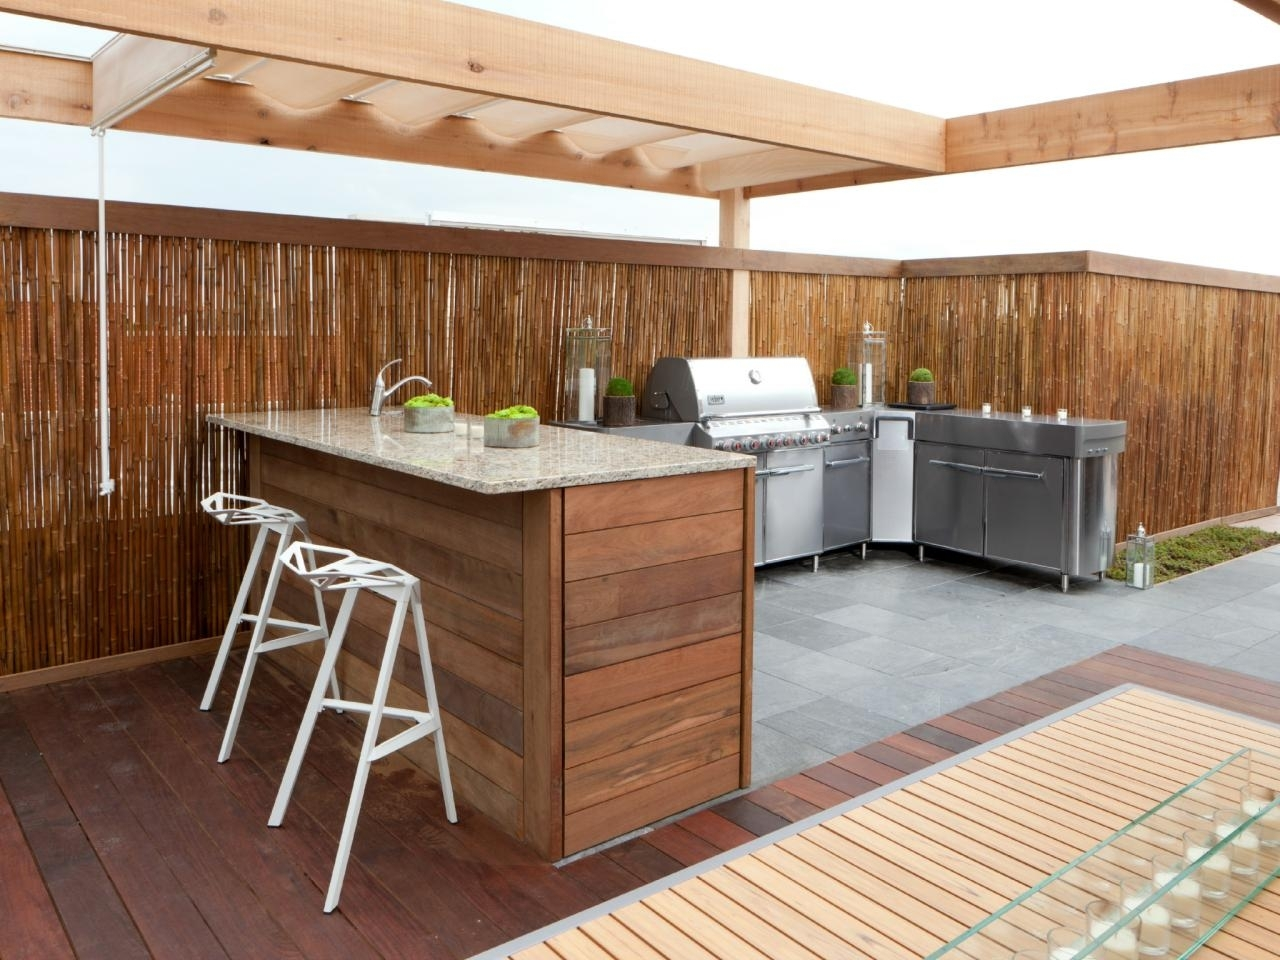 Image of: Kitchen Crashers Diy Inside Outdoor Kitchen Wood Countertops Nice Outdoor Kitchen Wood Countertops Inspiration